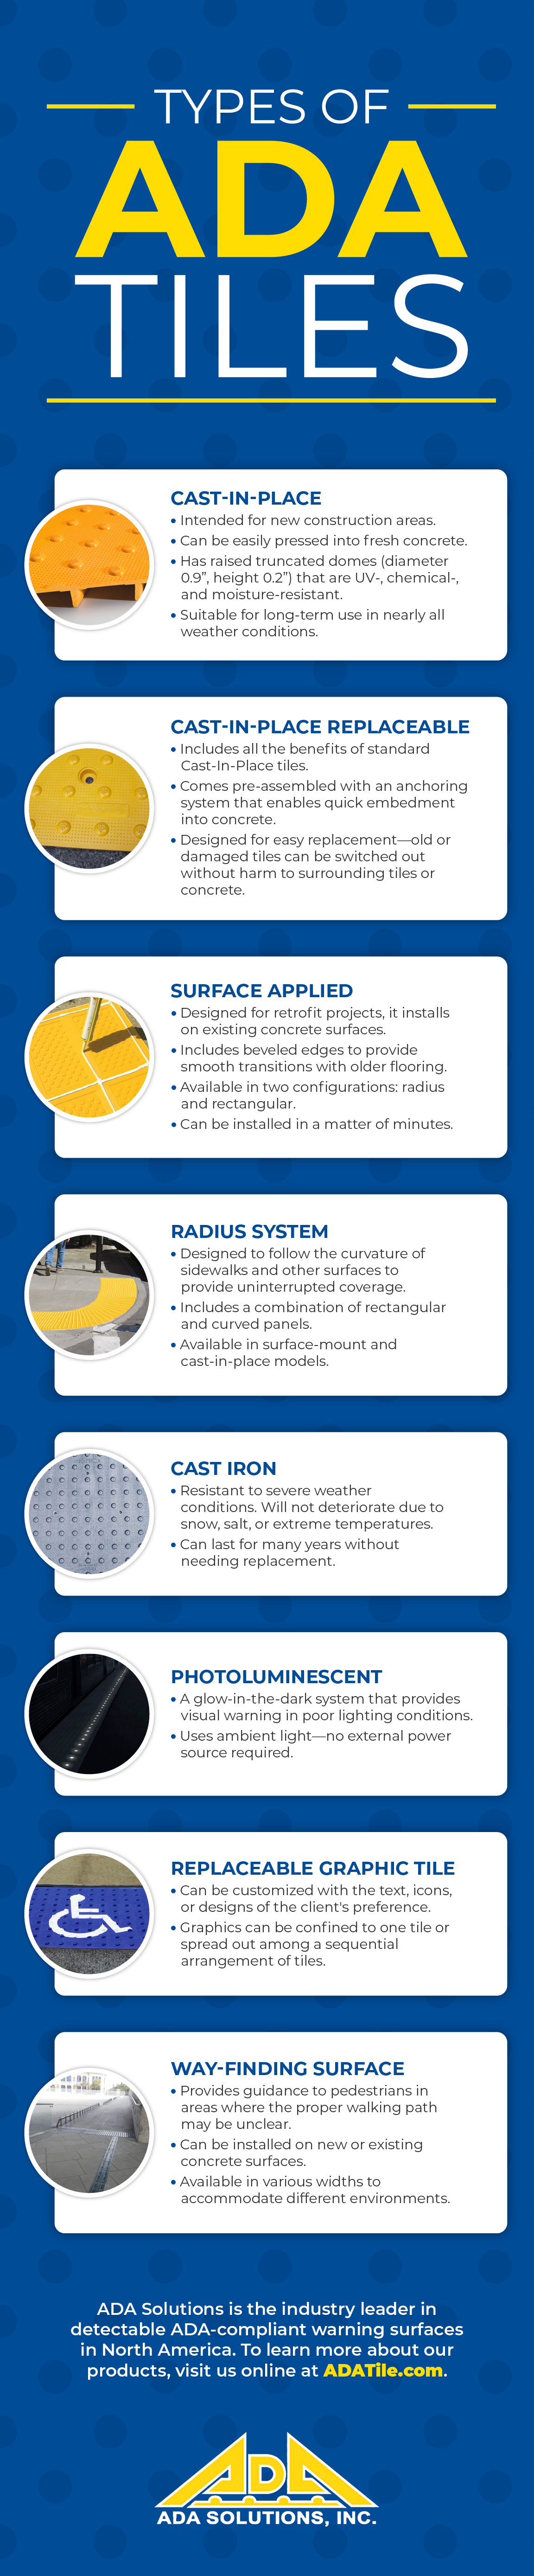 Different Types of ADA Tiles (Infographic)